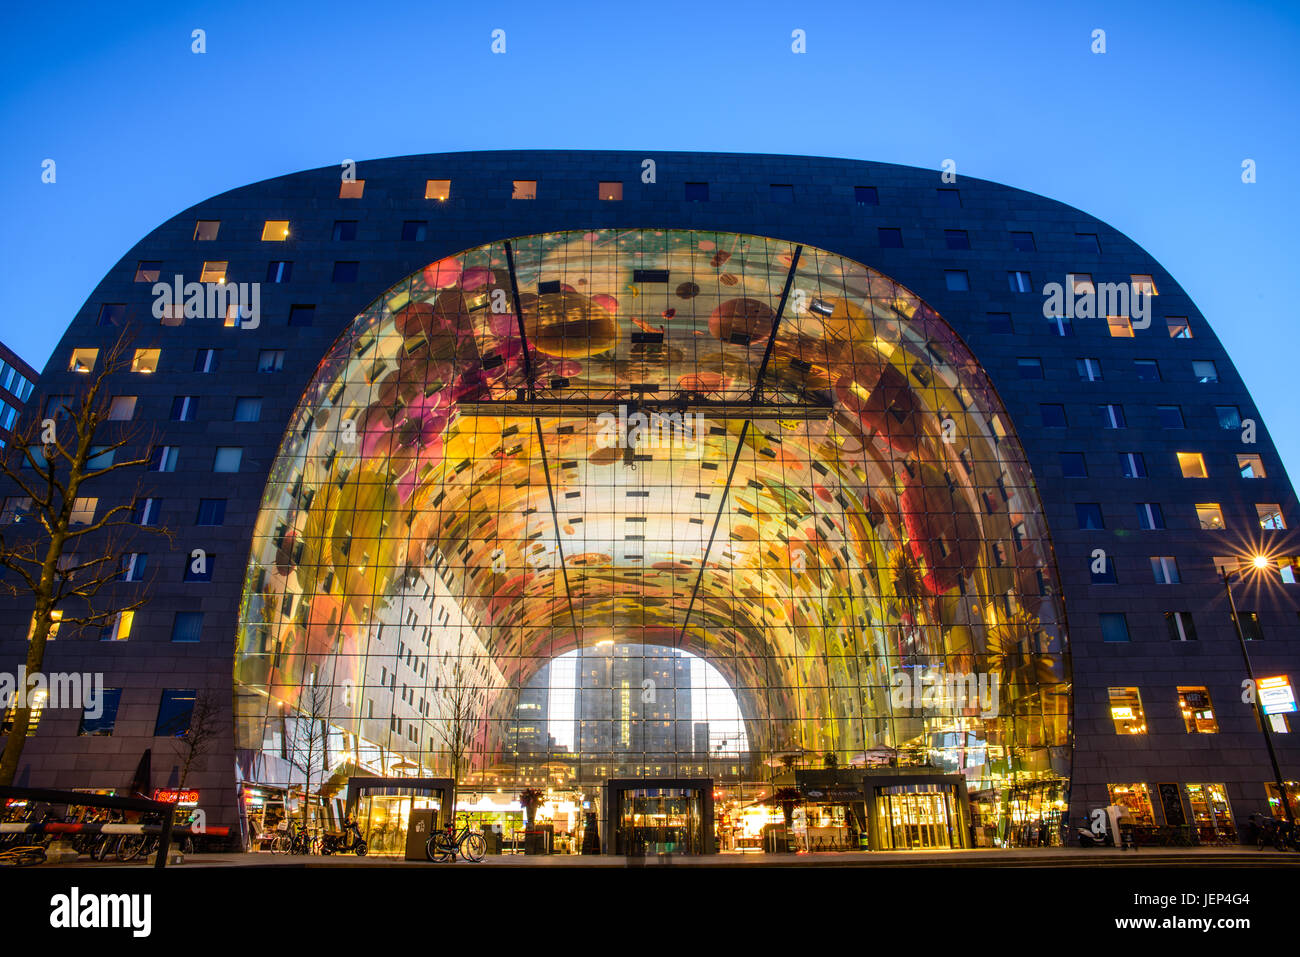 exterior-night-view-of-the-new-and-colored-market-hall-located-in-JEP4G4.jpg